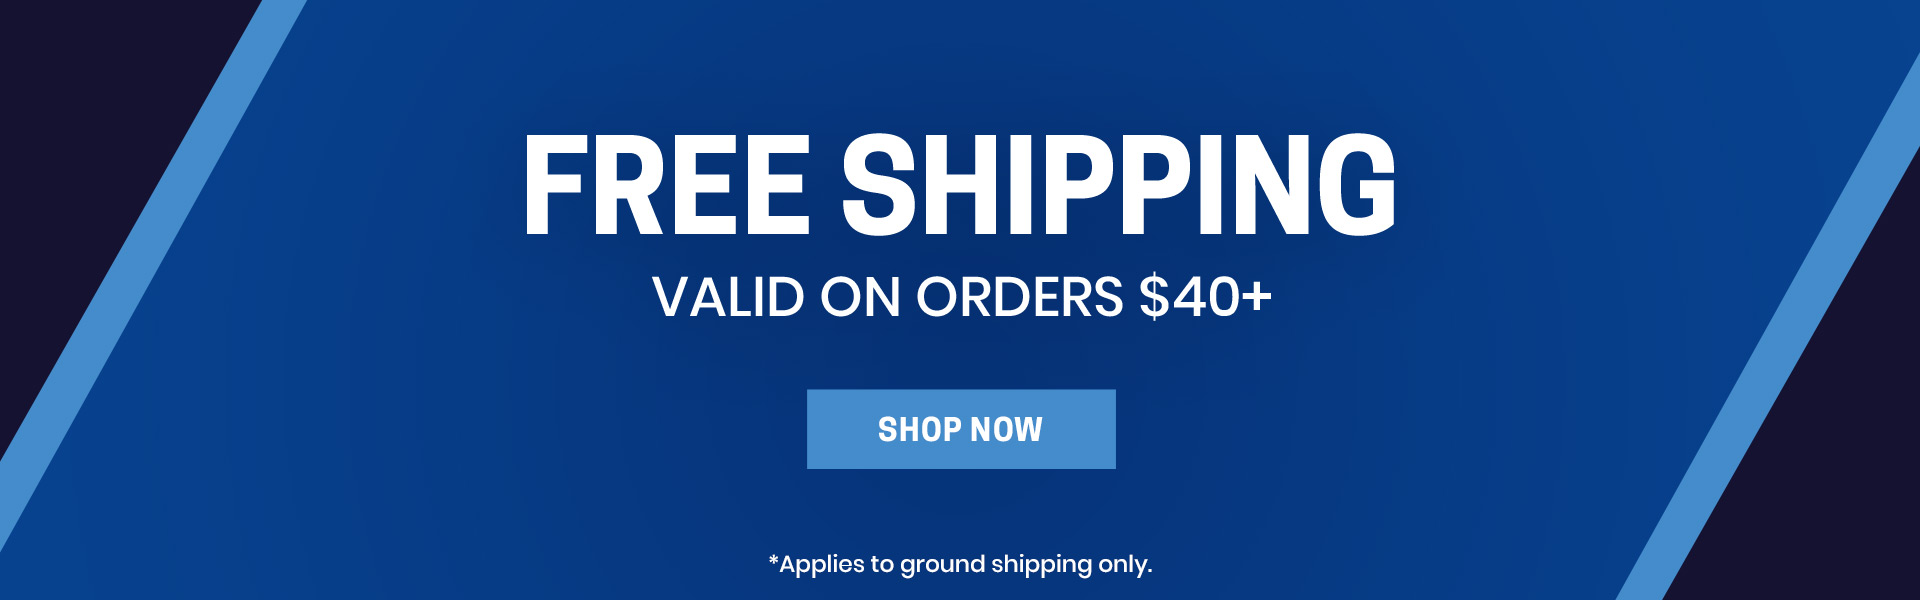 Free shipping on orders $40+